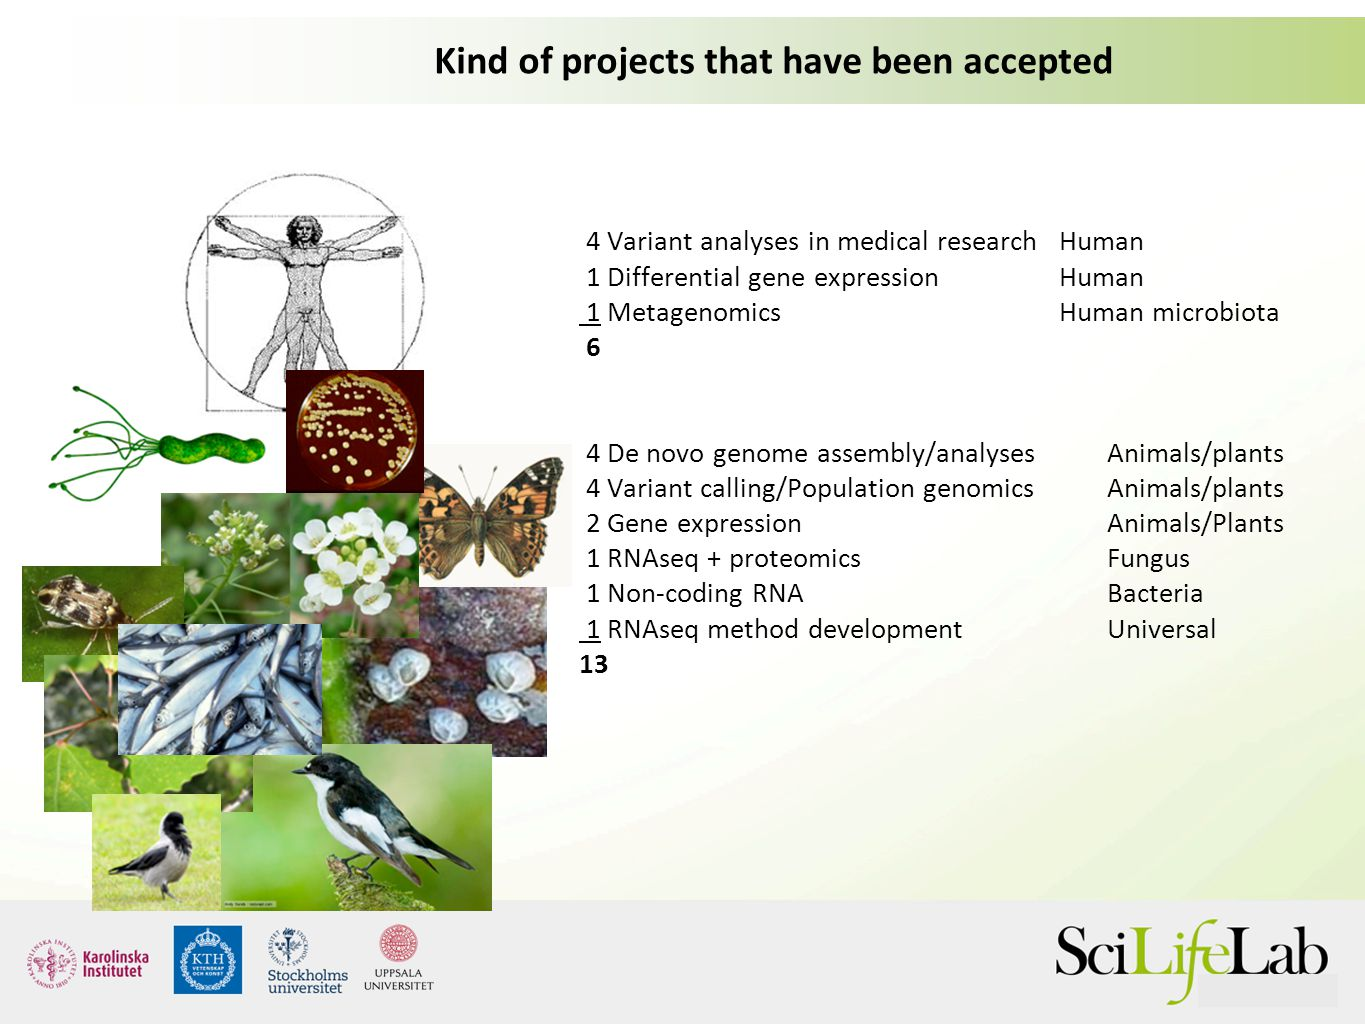 Kind of projects that have been accepted